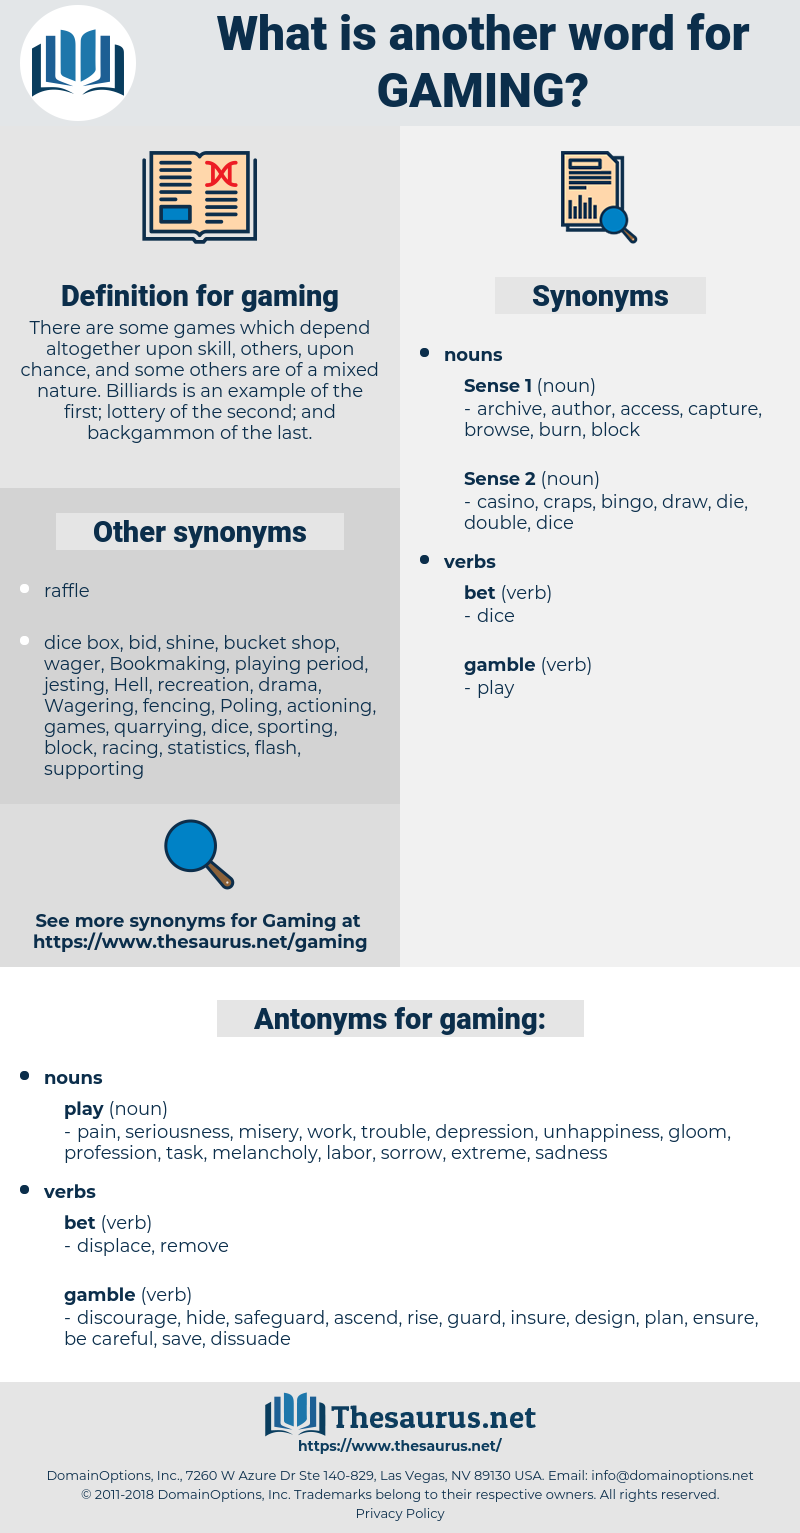 gaming, synonym gaming, another word for gaming, words like gaming, thesaurus gaming